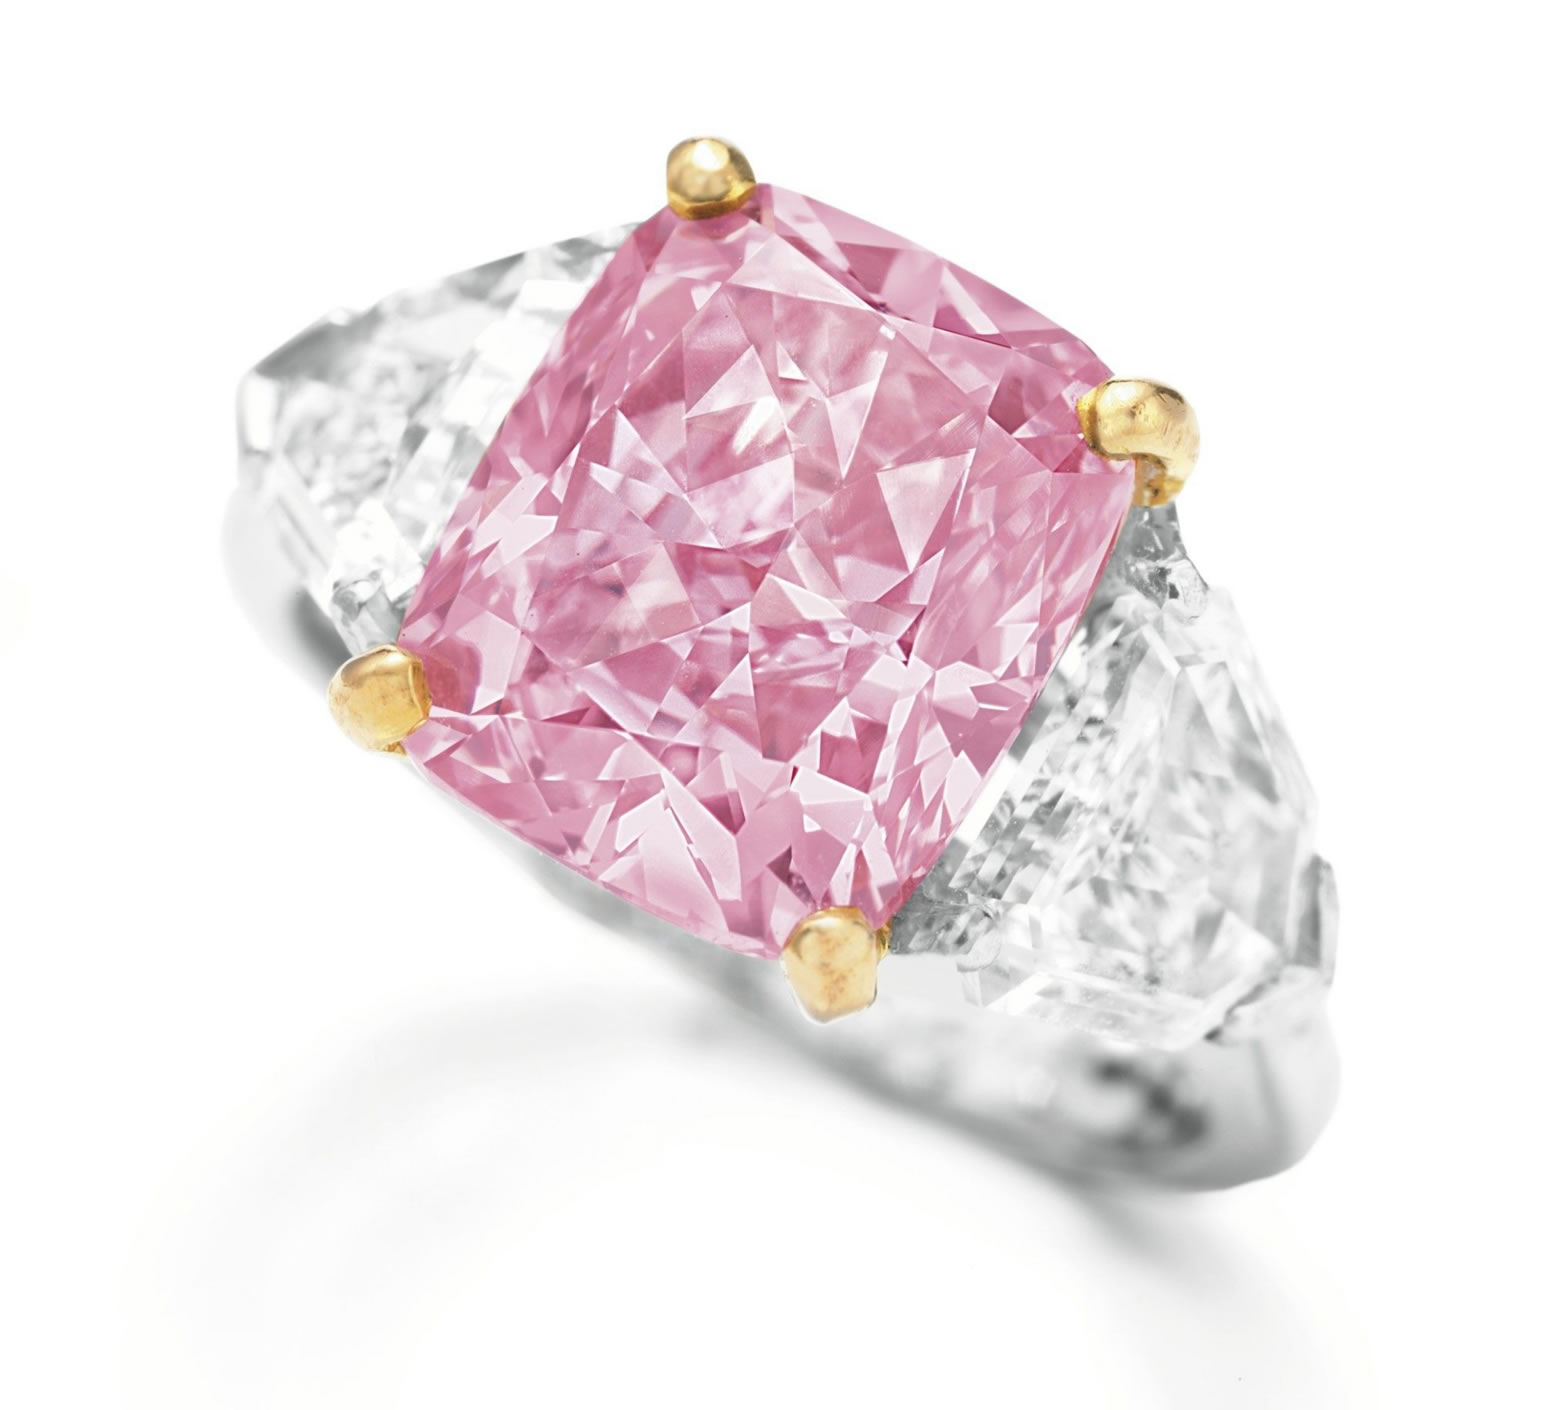 Most Expensive Diamond-\'Vivid Pink\' sets world record